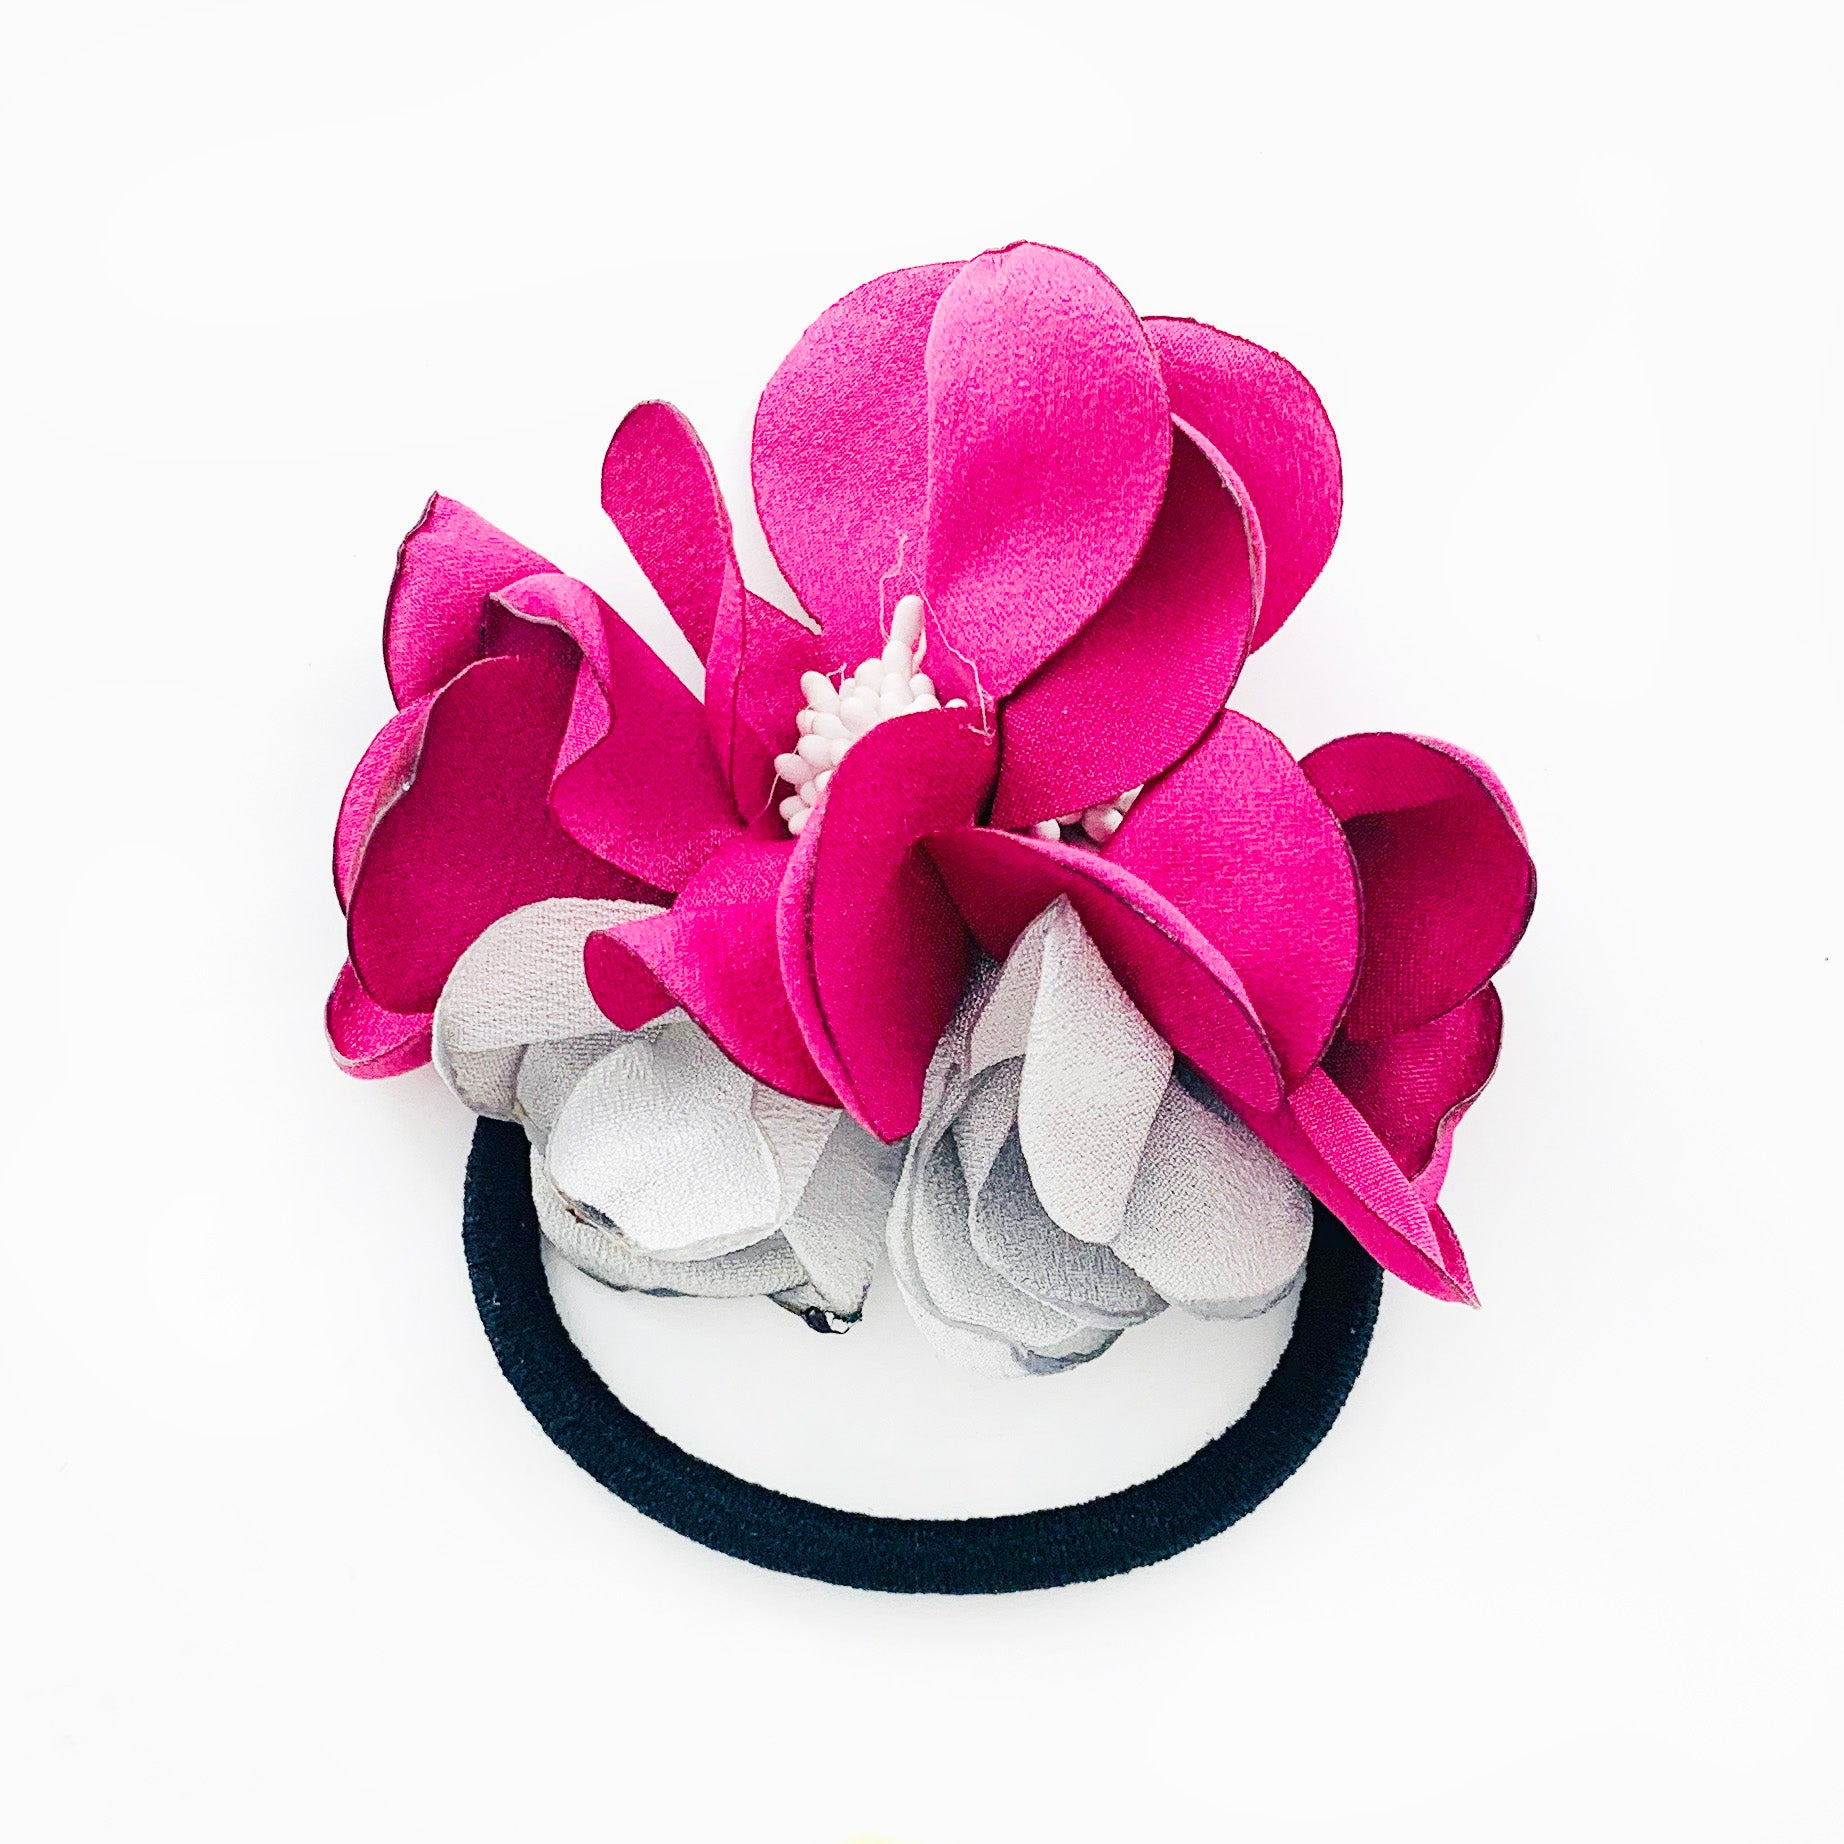 Hair tie with Dark Pink and Grey Fabric flowers